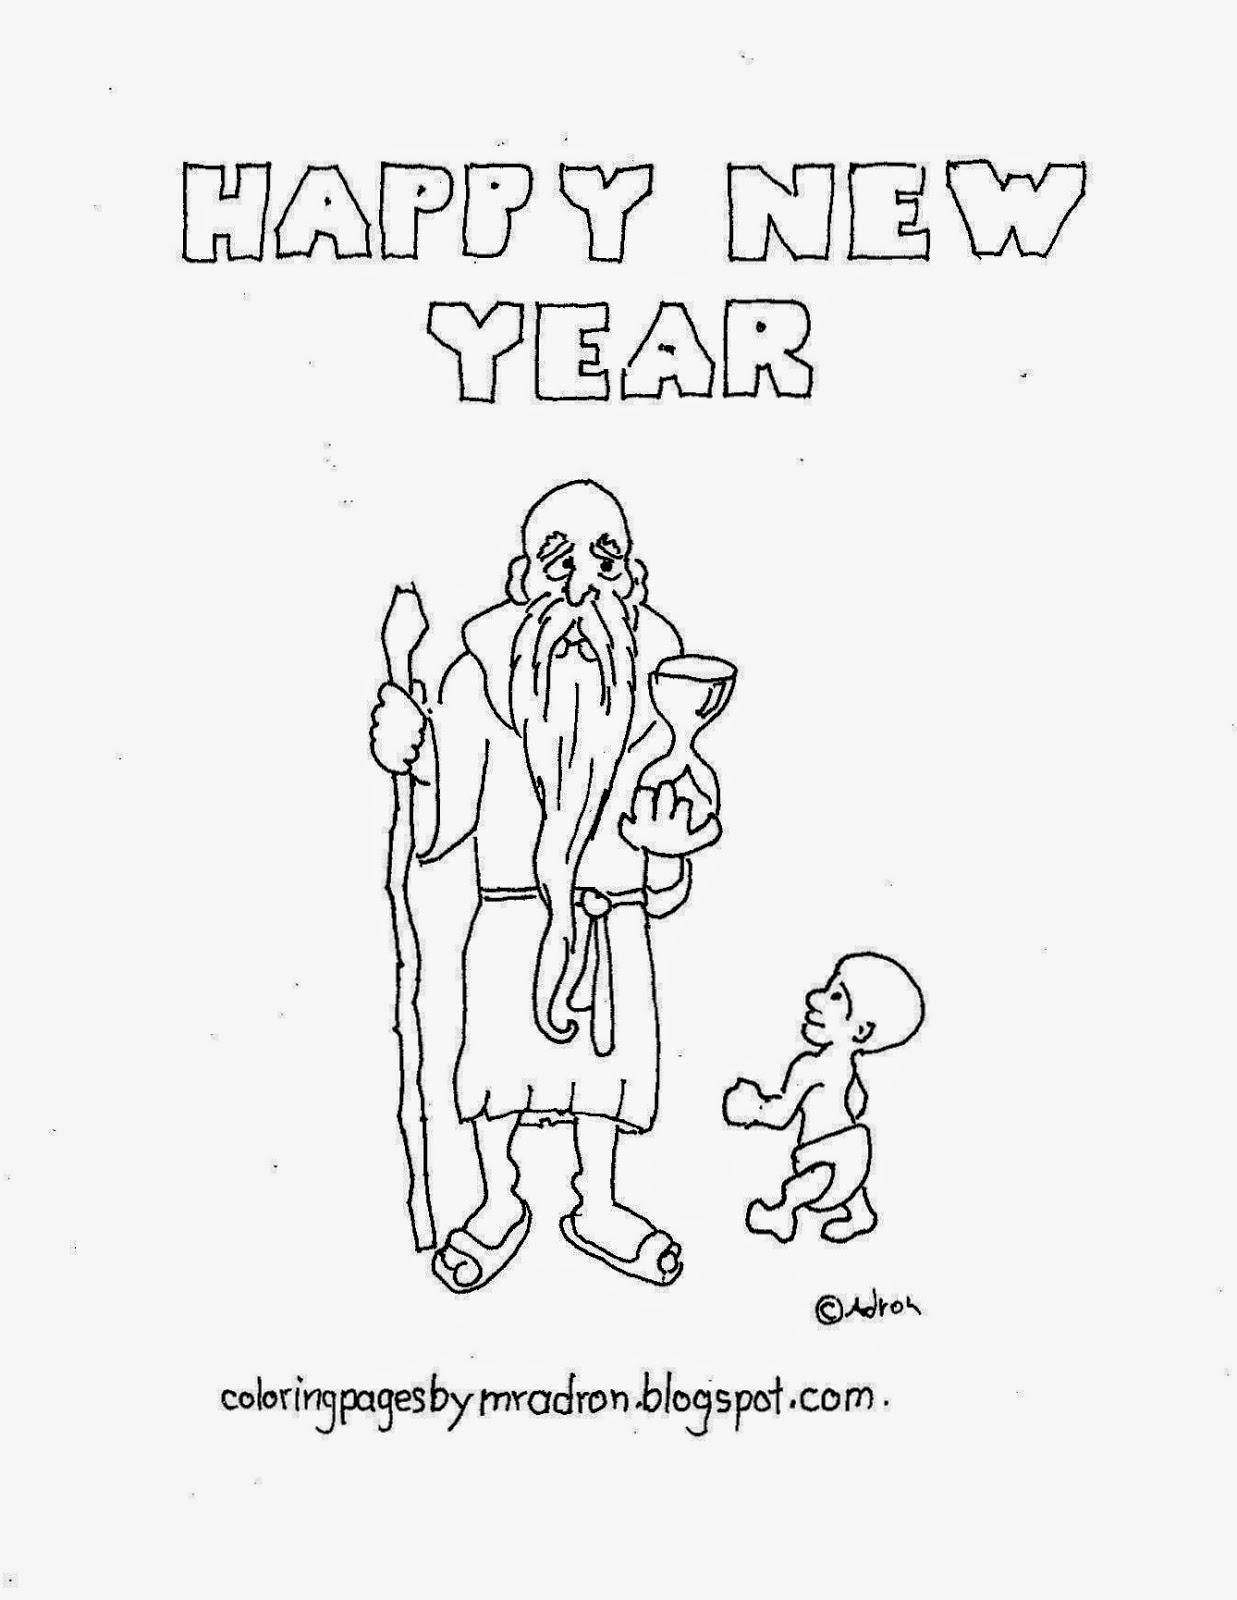 Coloring Pages For Kids By Mr Adron Father Time Happy New Year Printable Picture To Color